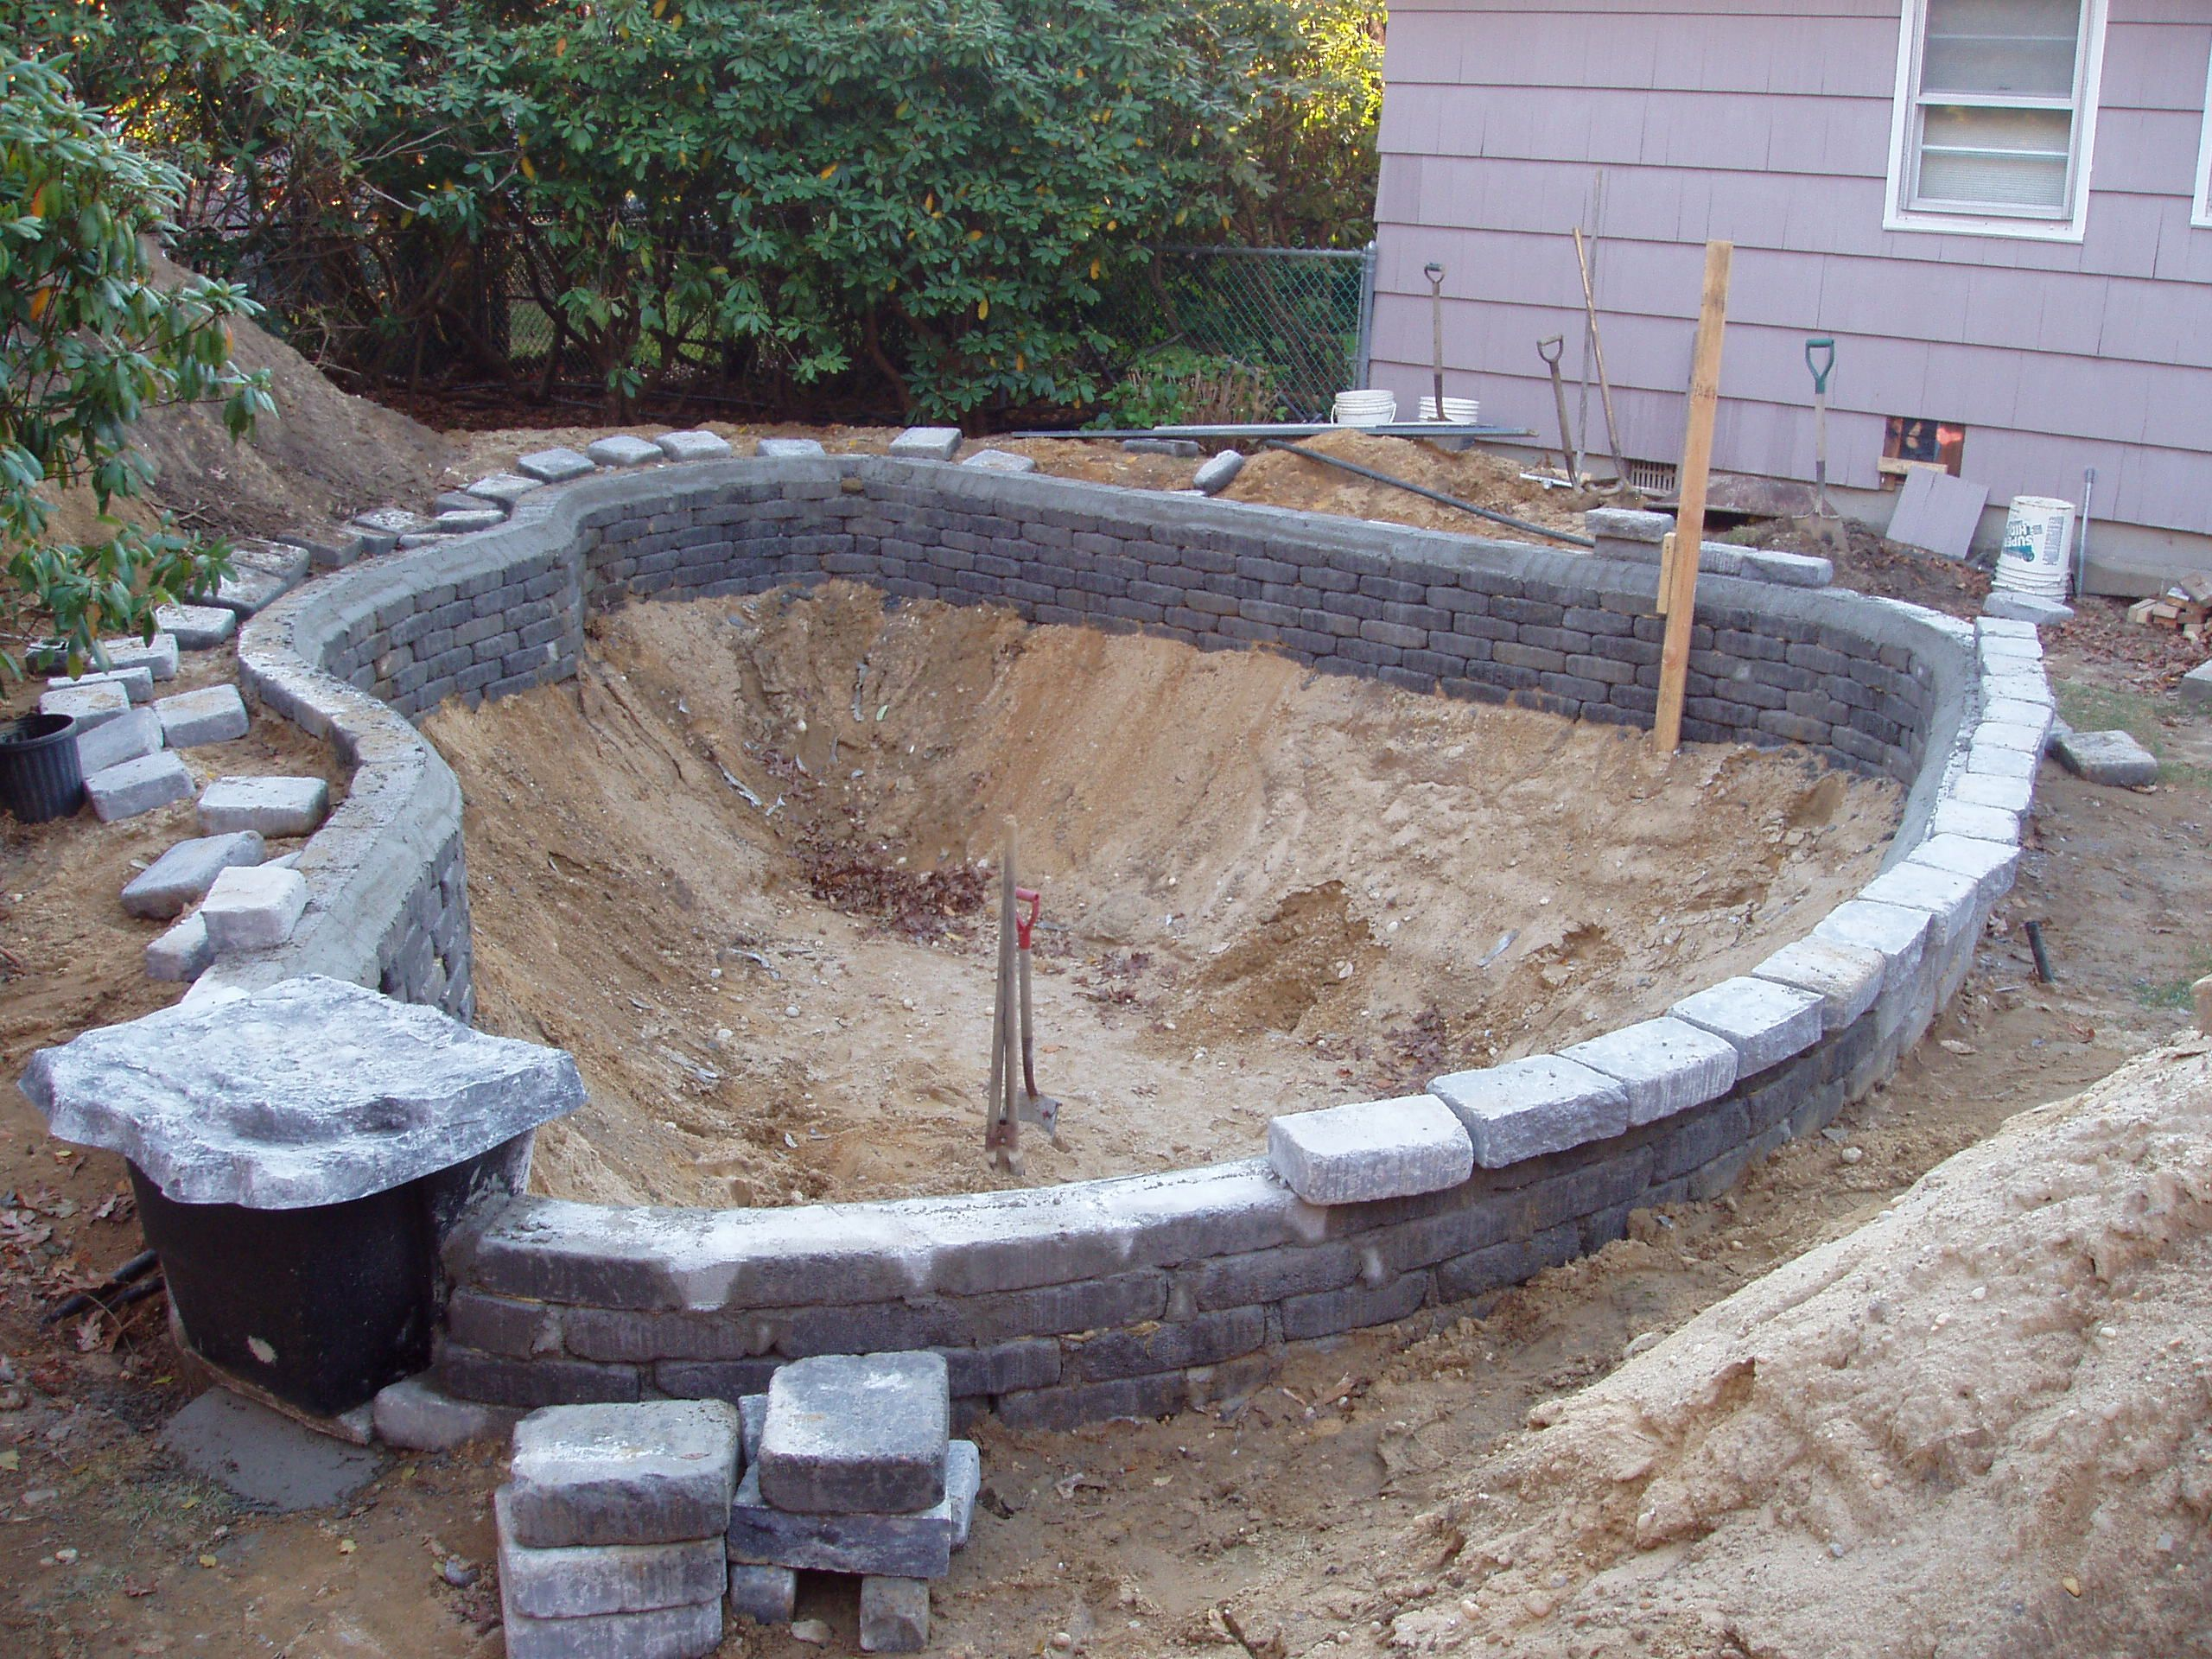 Pond design and construction google search aquaponics for Koi pond design and construction